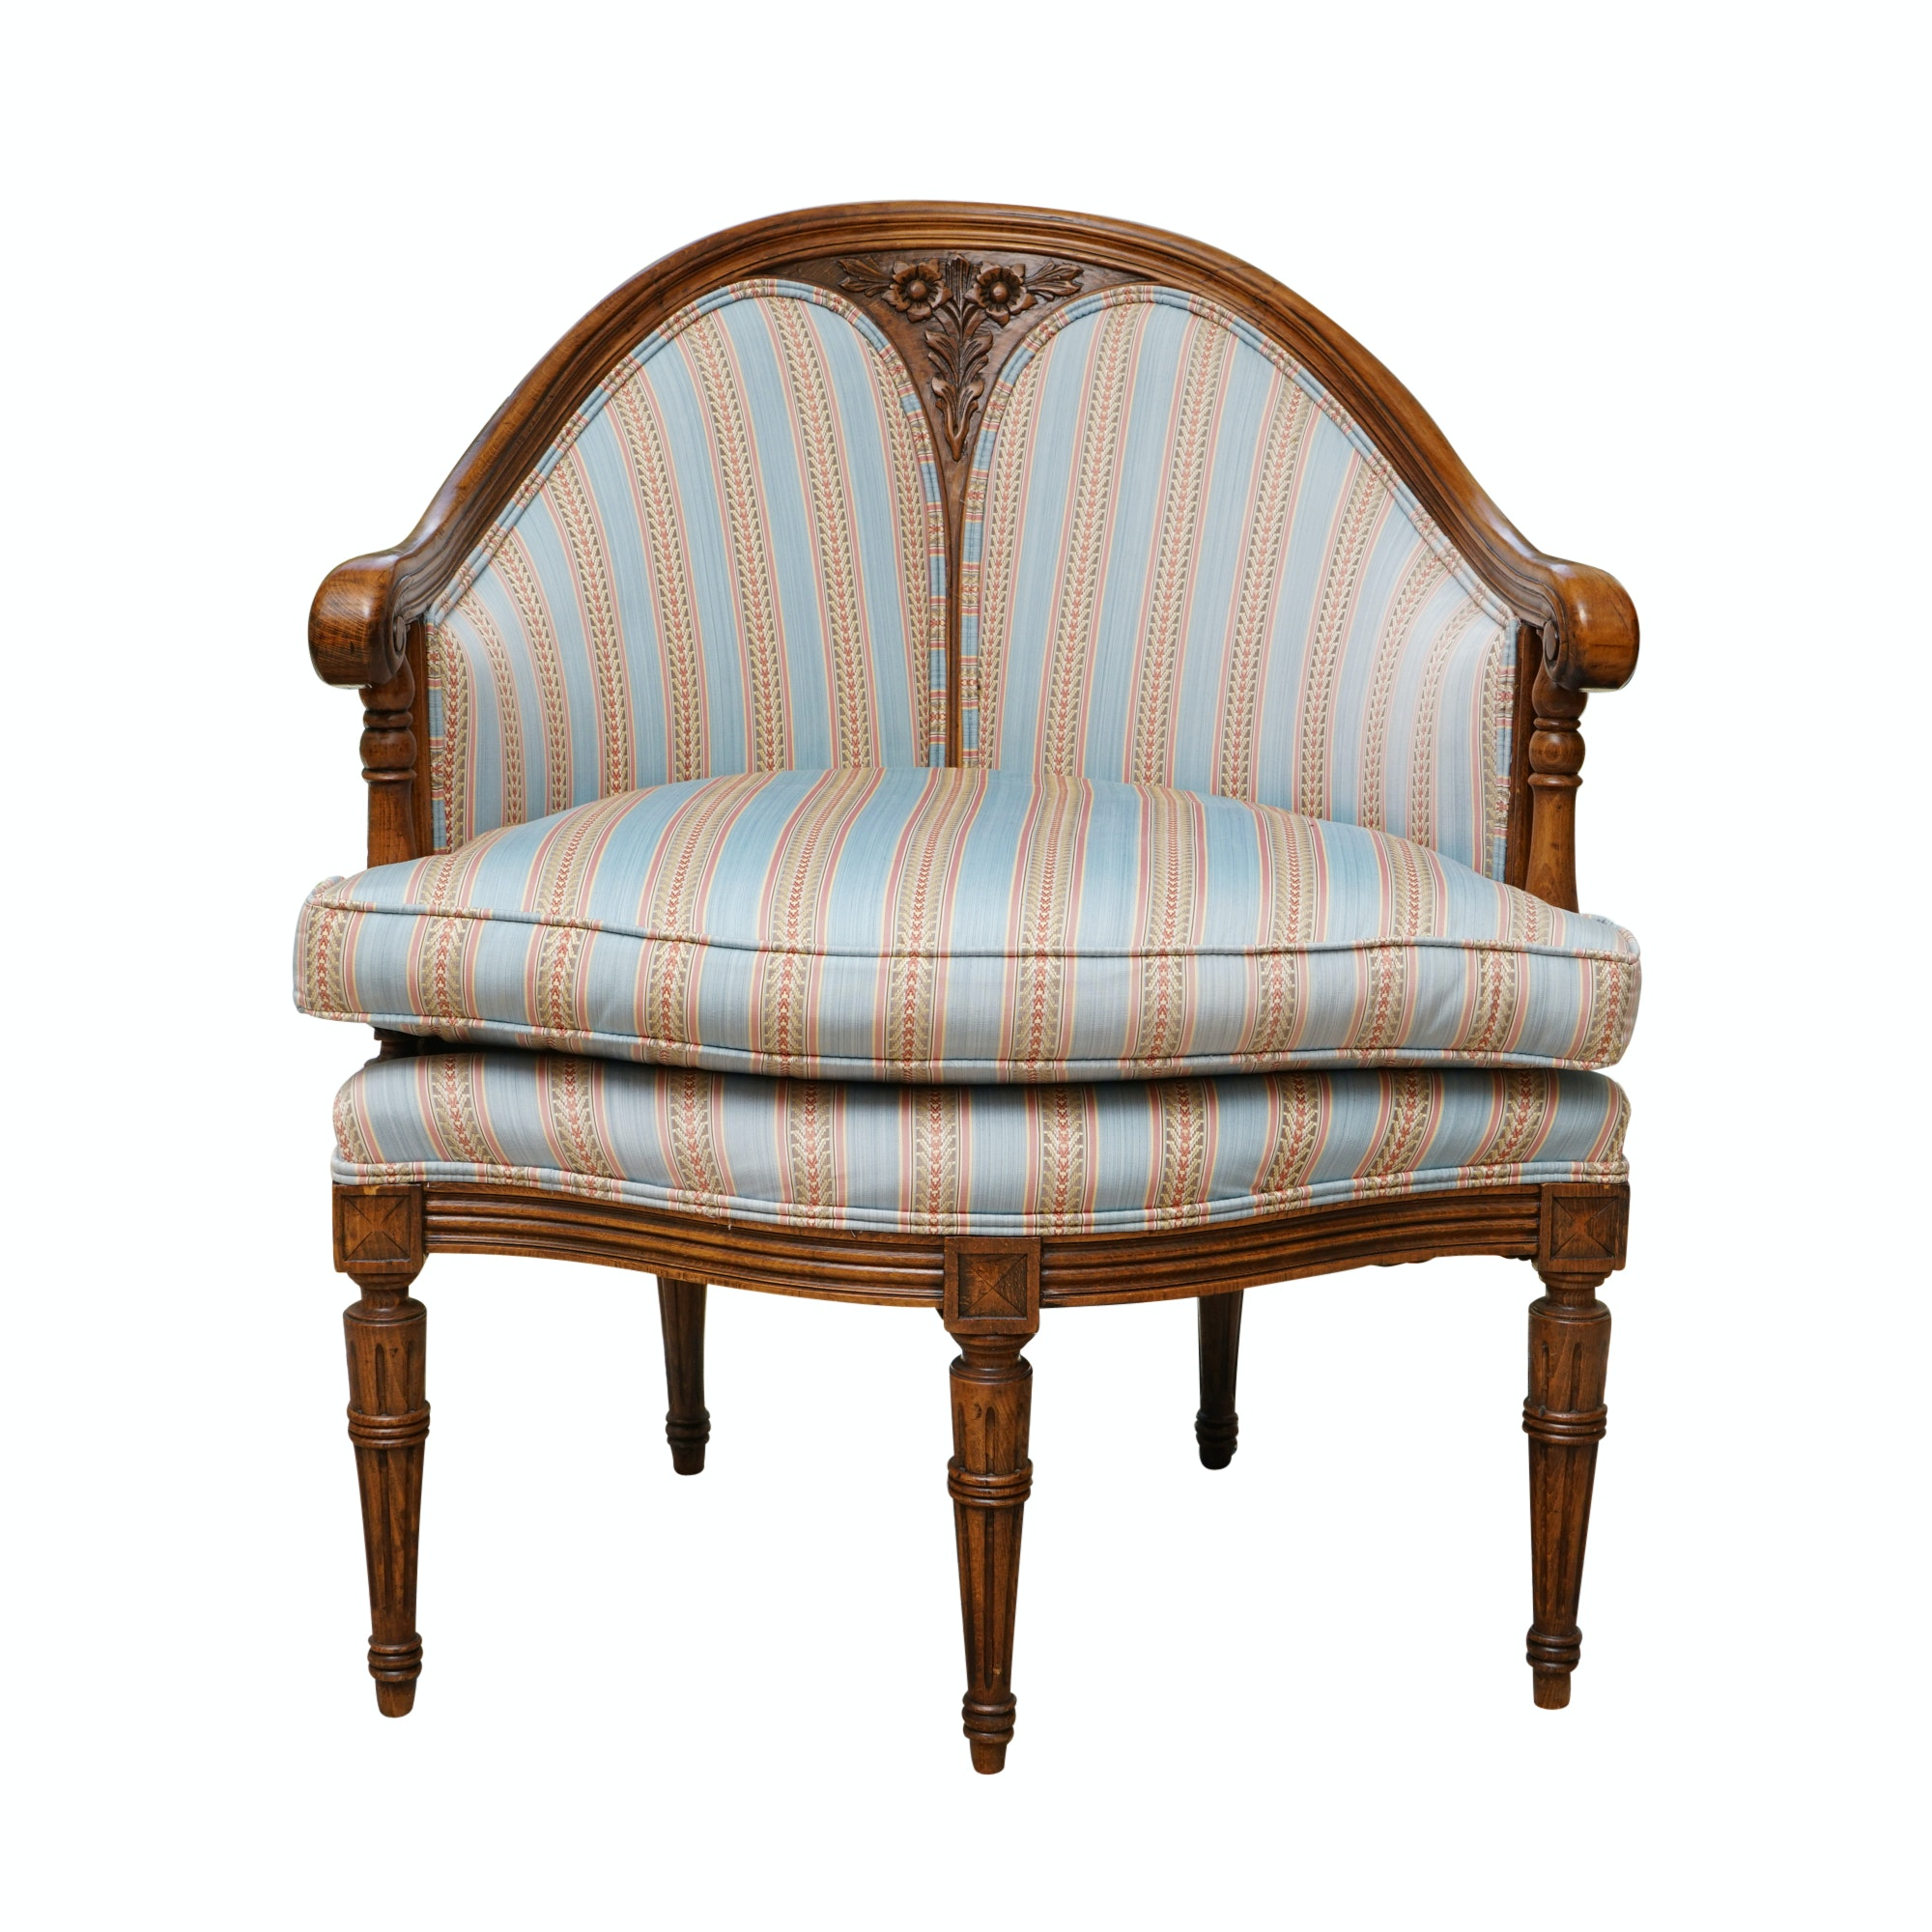 Regency Style Stripe Upholstered Tub Chair with Floral Accents